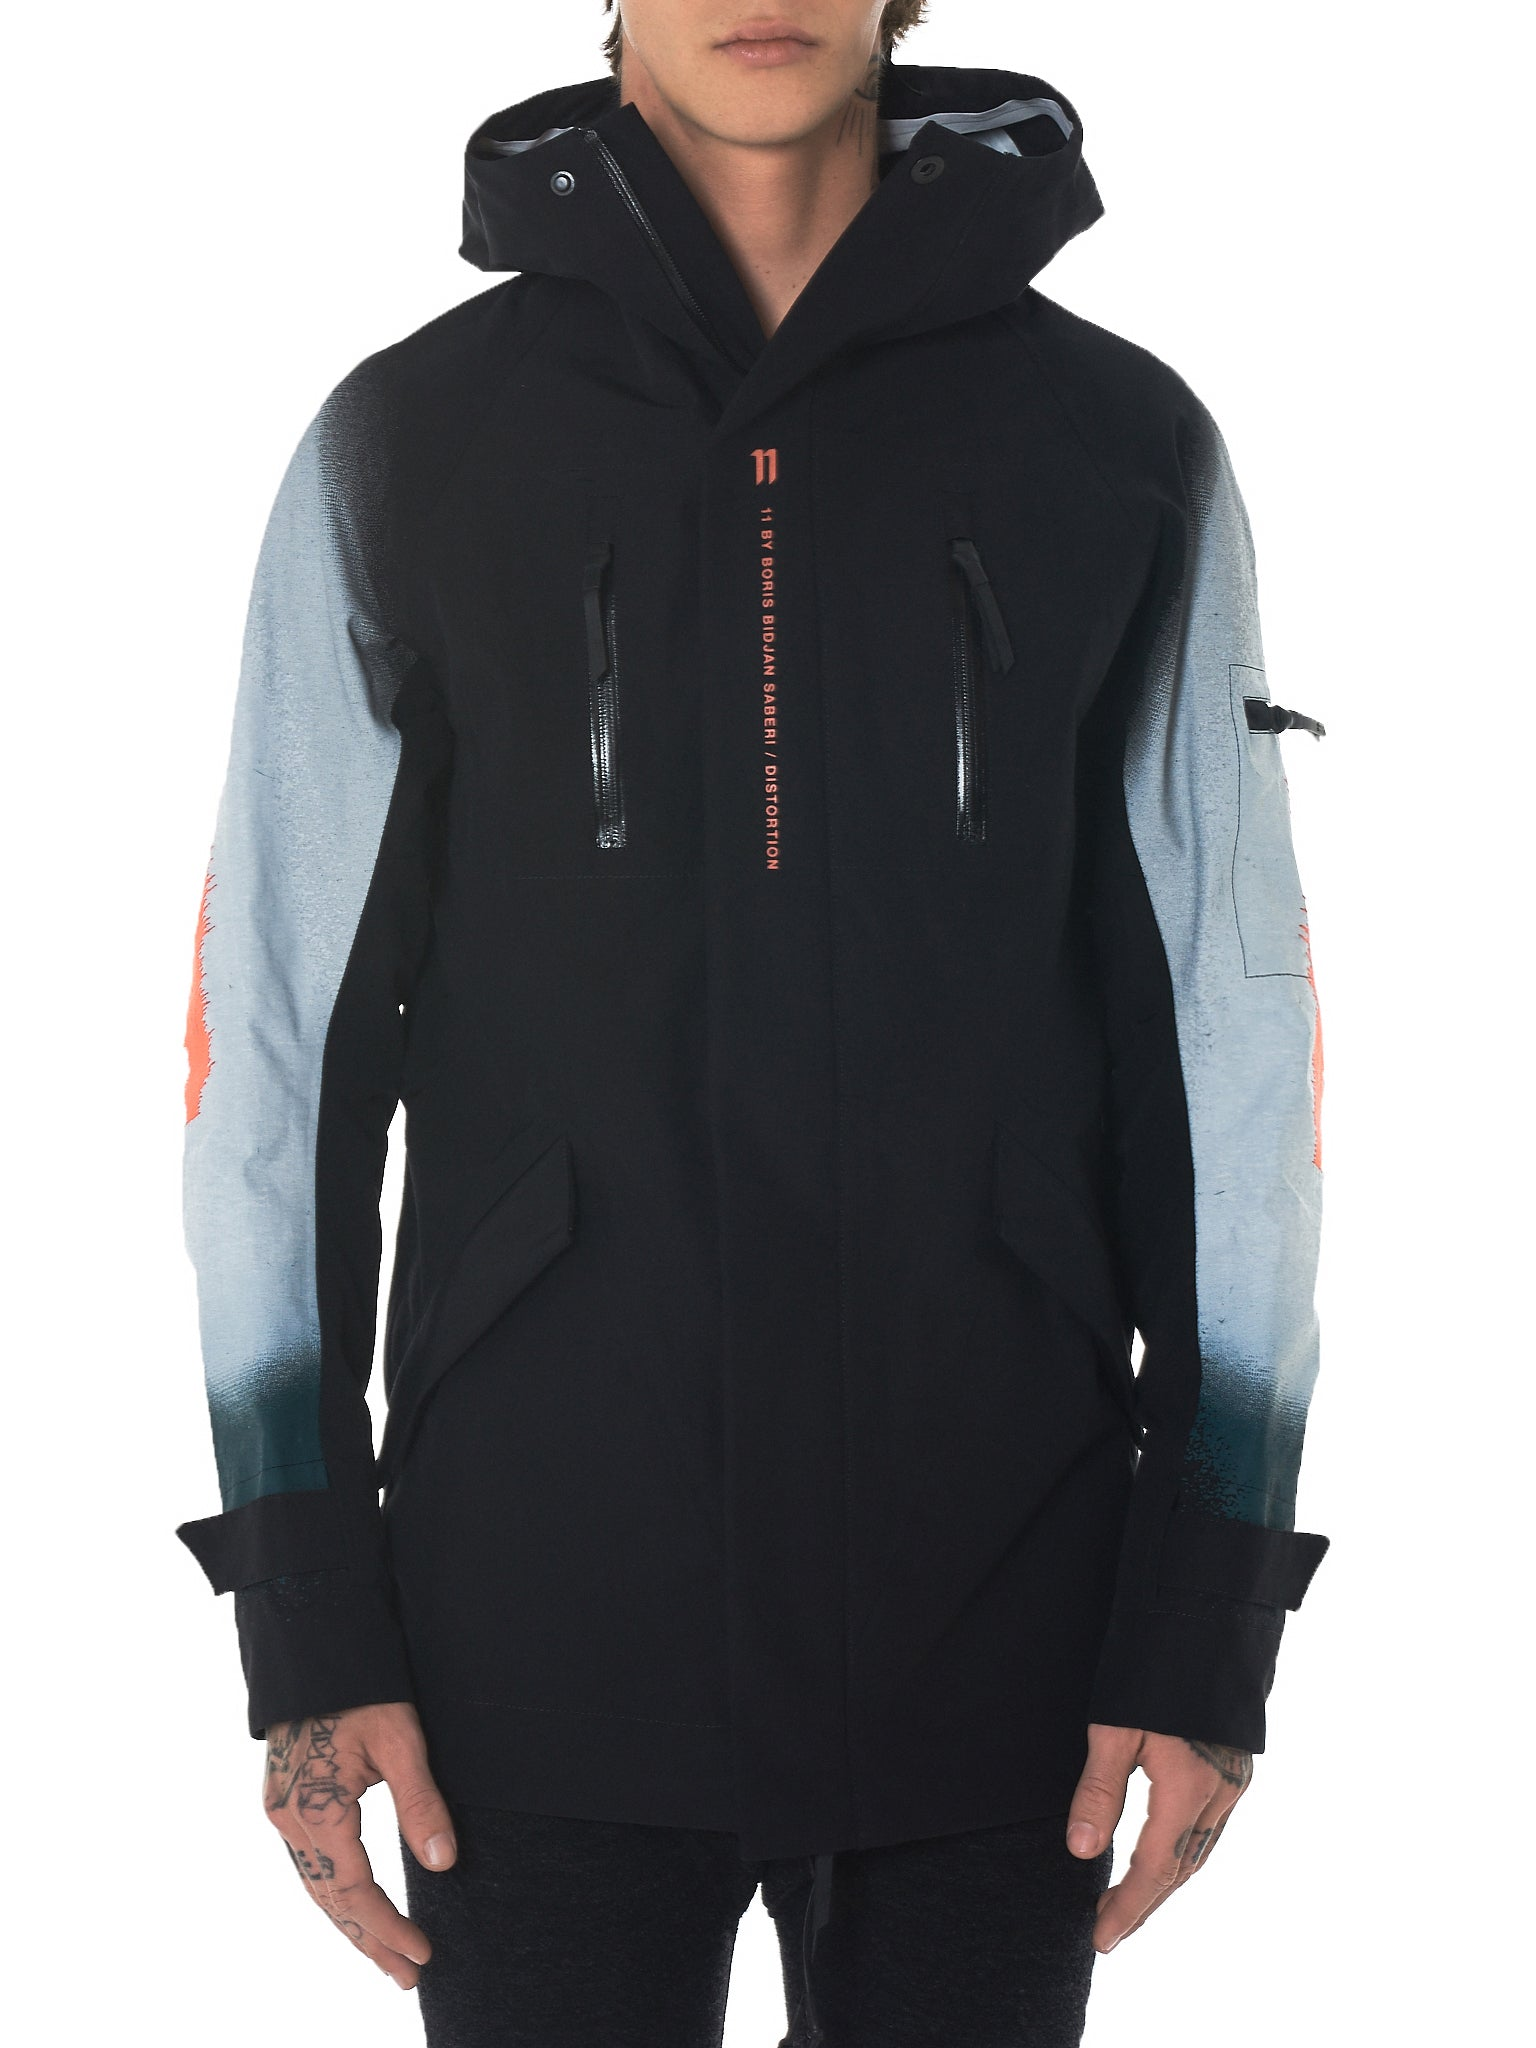 11 By Boris Bidjan Saberi Distortion Hooded Jacket - Hlorenzo Front